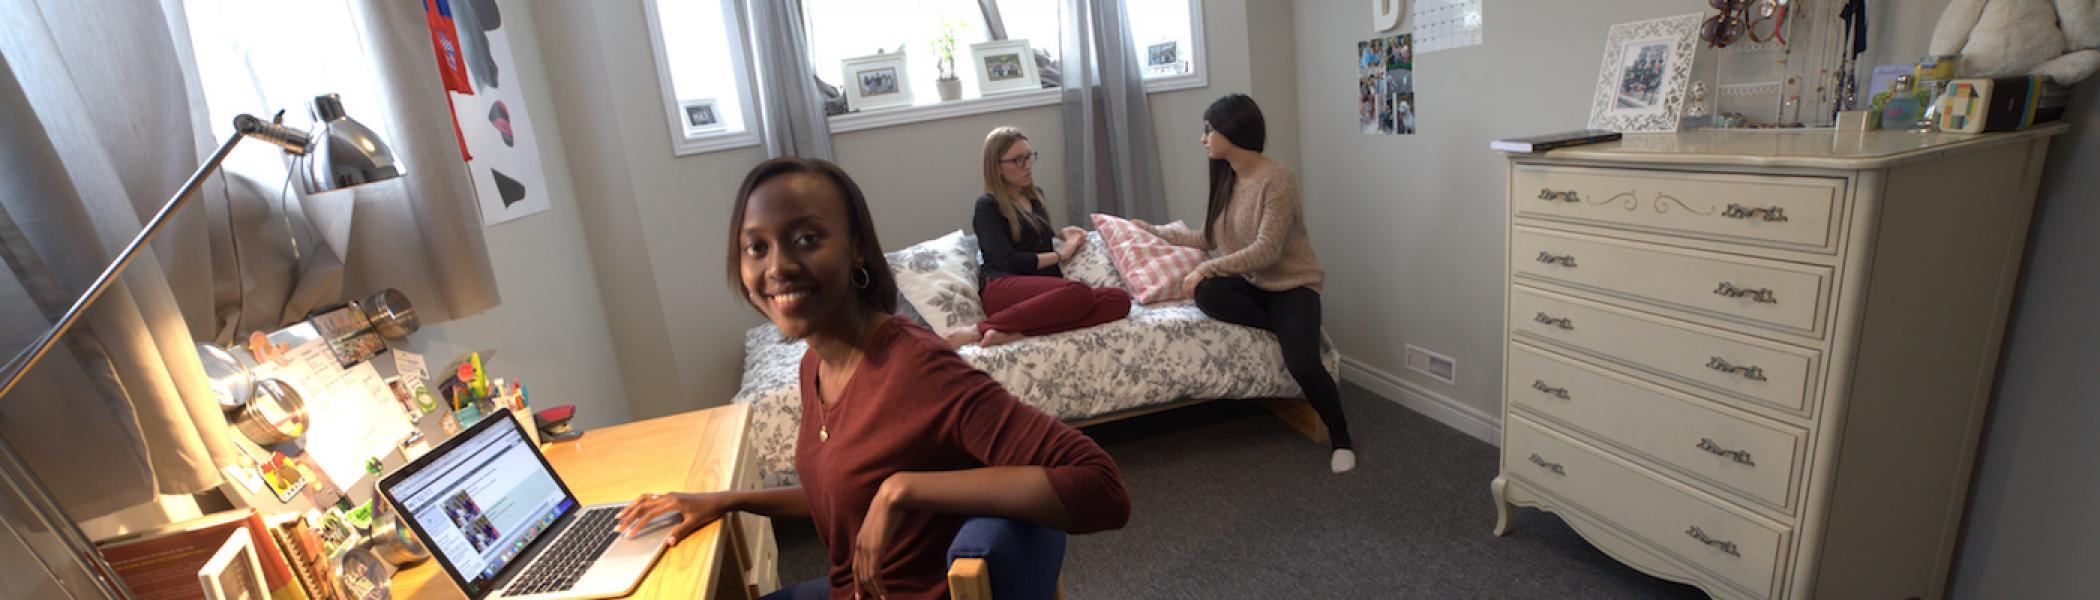 A girl sitting at her desk in her dorm room smiling with two girls sitting on her bed